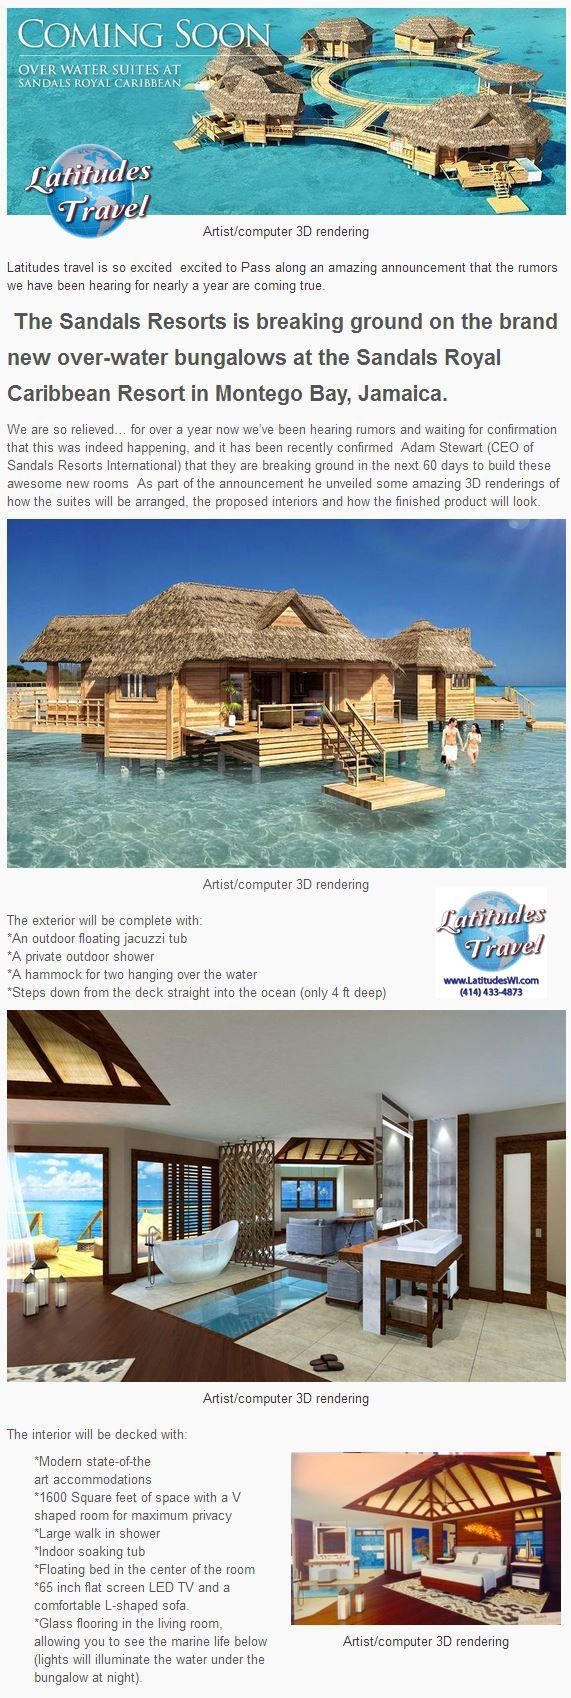 The Sandals Resorts is breaking ground on the brand new over-water bungalows at the Sandals Royal Caribbean Resort in Montego Bay, Jamaica.   More photos at: http://www.latitudeswi.com/caribbeans-first-water-bungalows/05/23/2014/